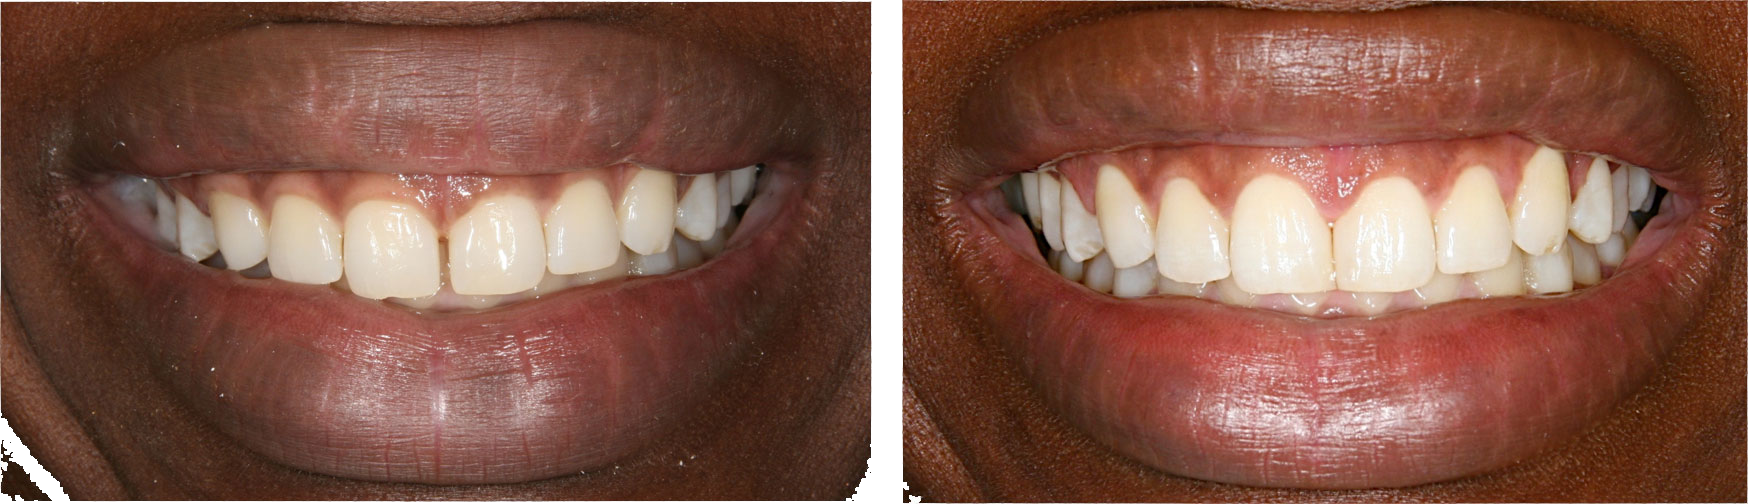 Before and After Teeth Whitening in Financial District